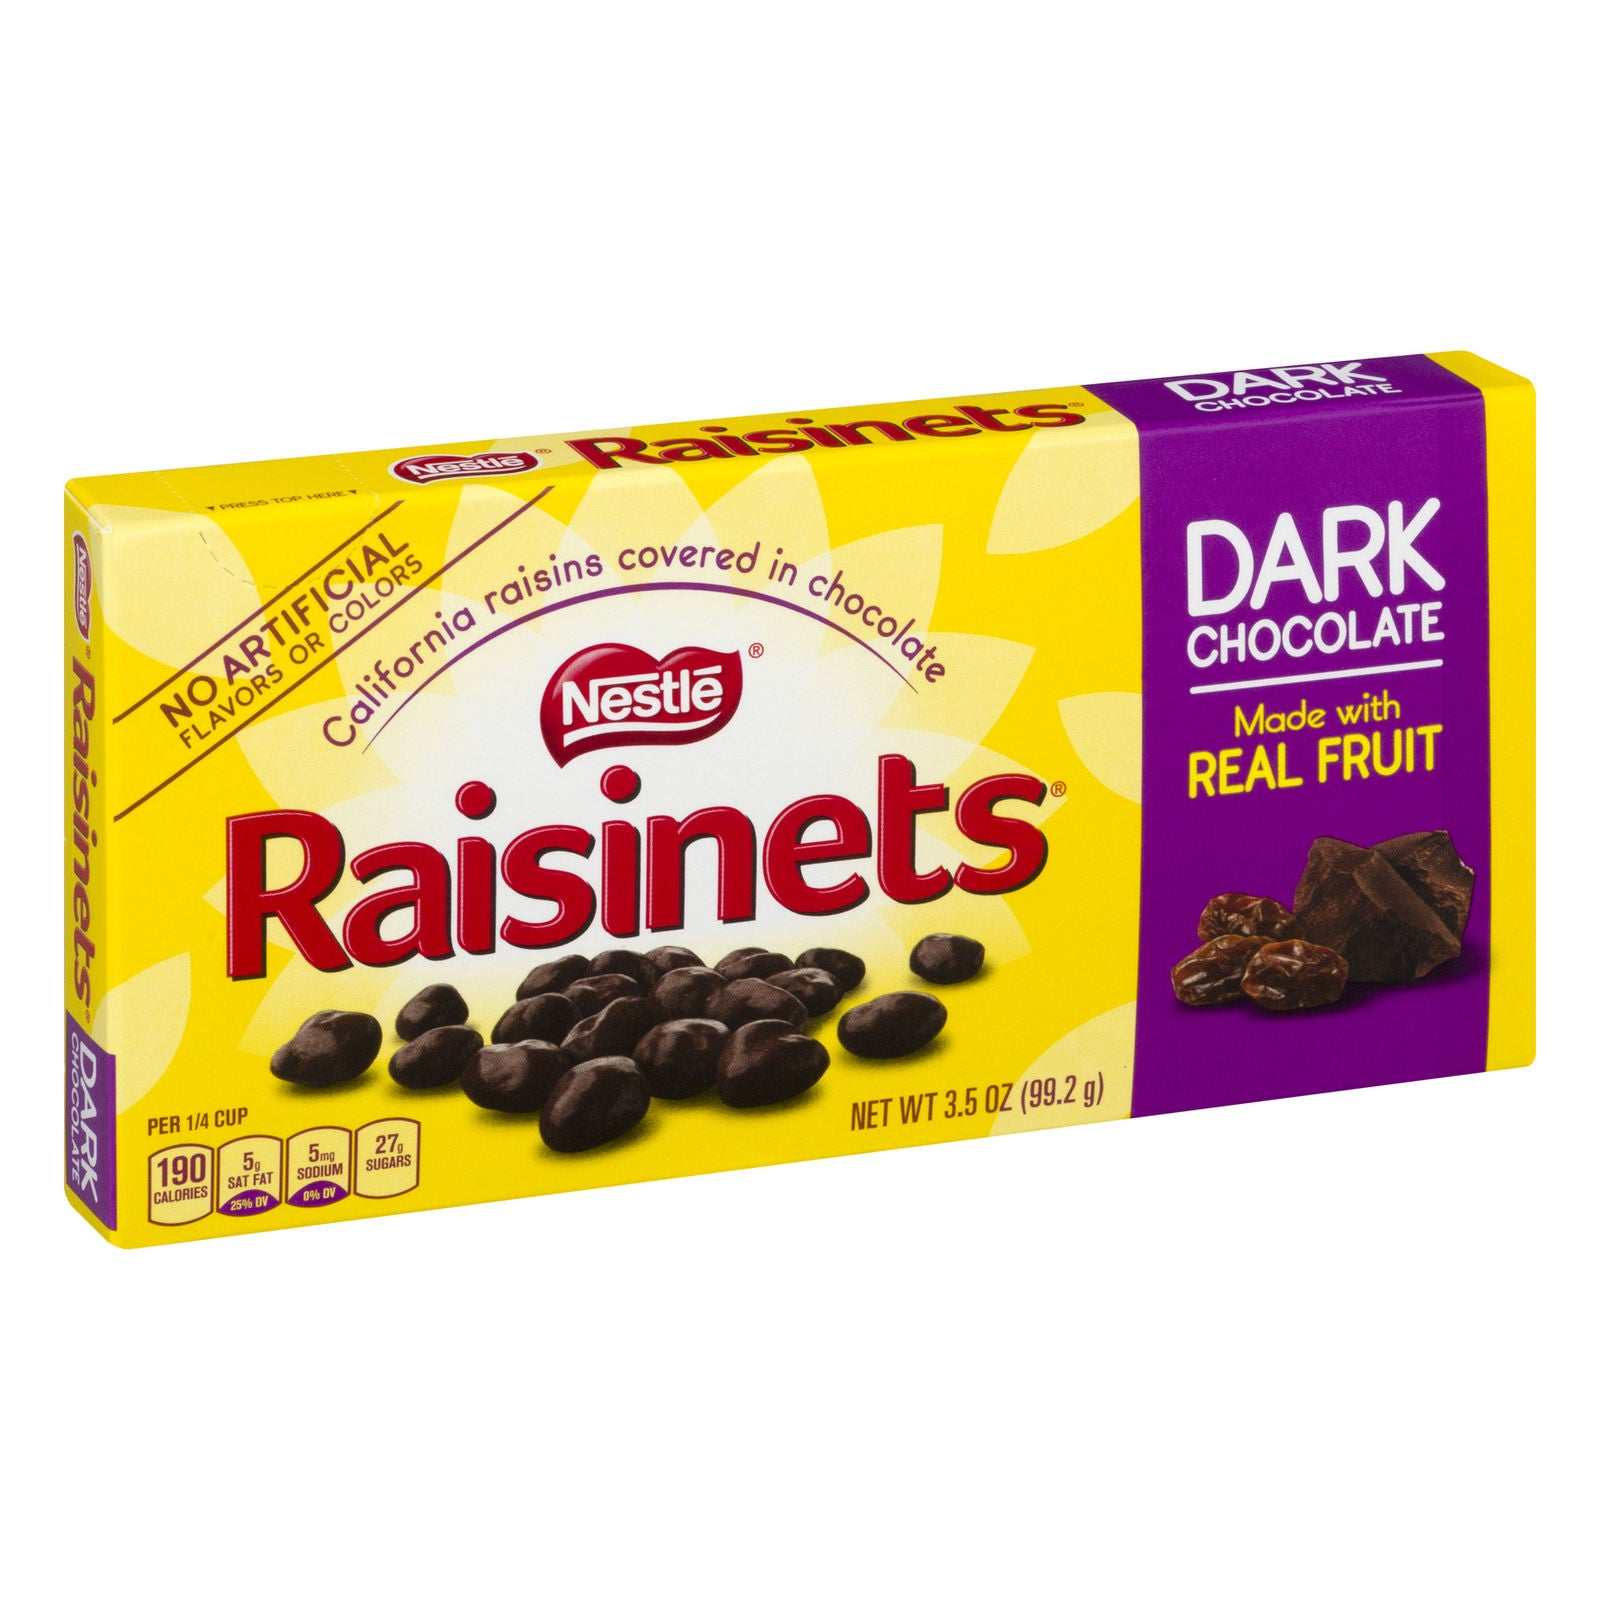 Raisinets California Raisins Covered in Dark Chocolate, 3.5oz Box